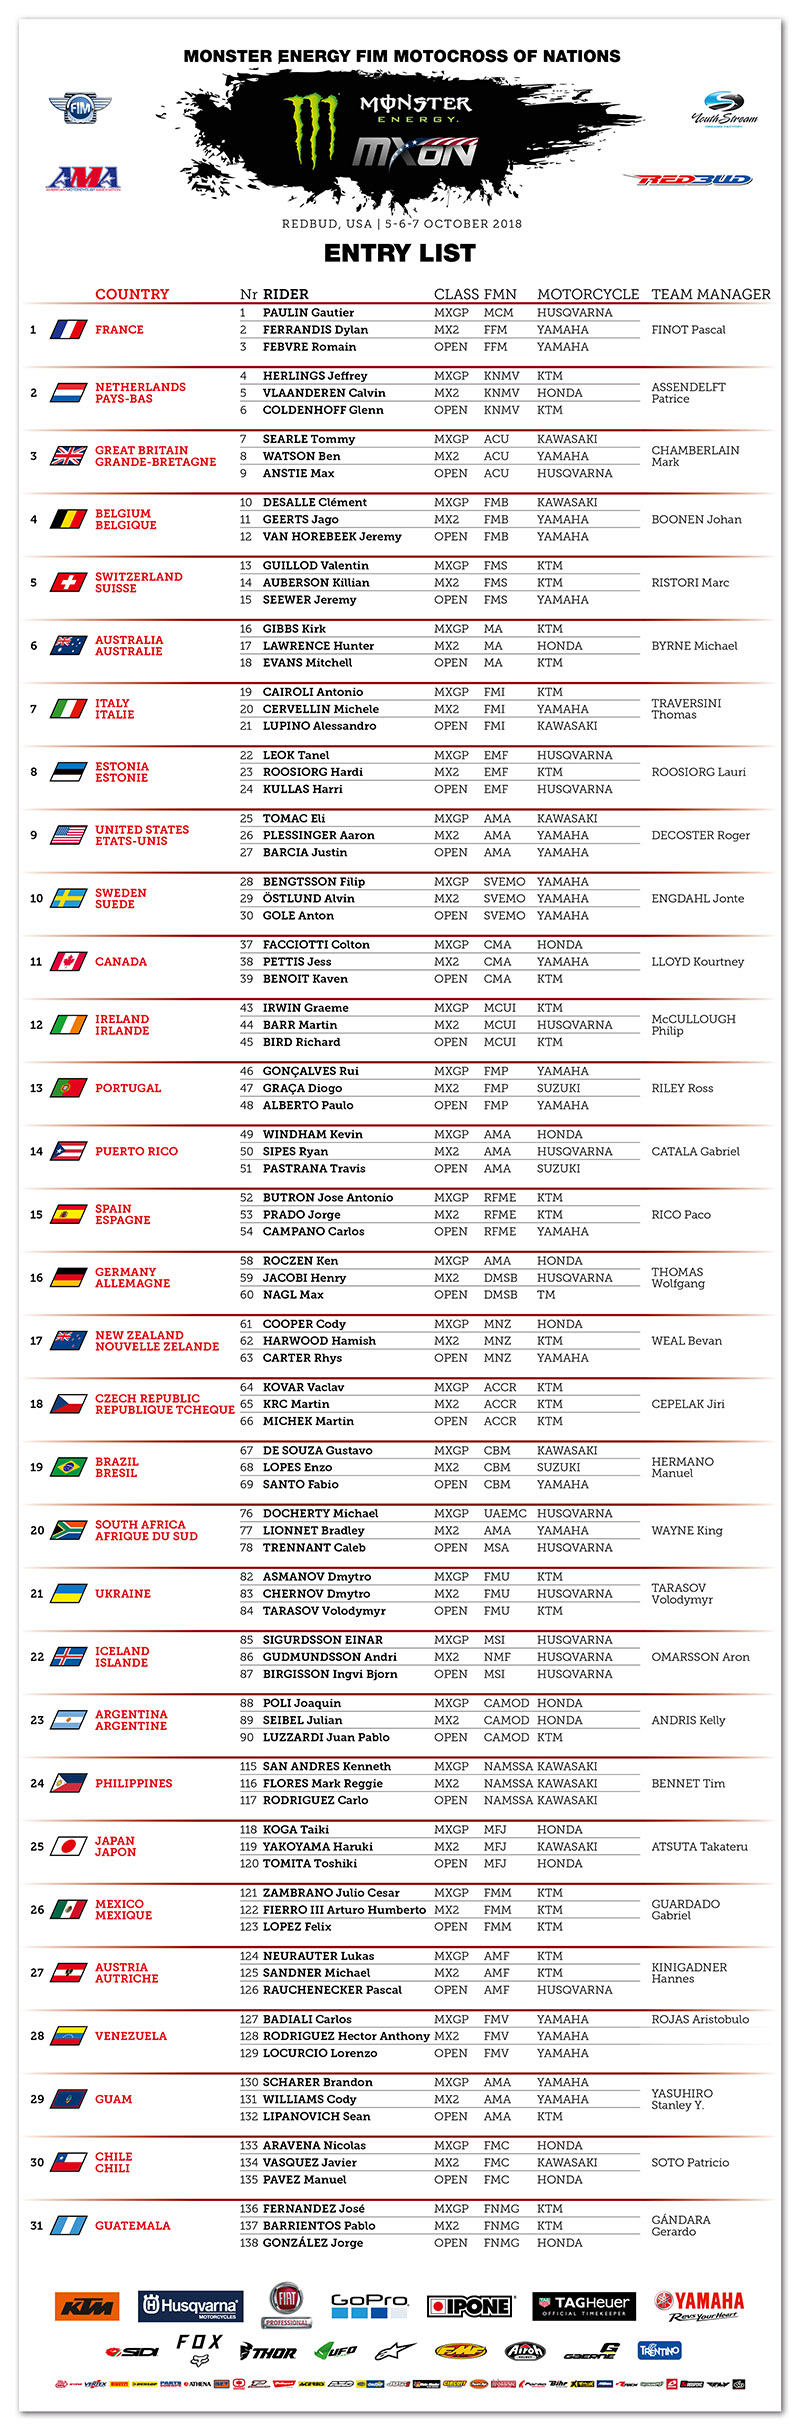 The entry list is available for download in PDF format here